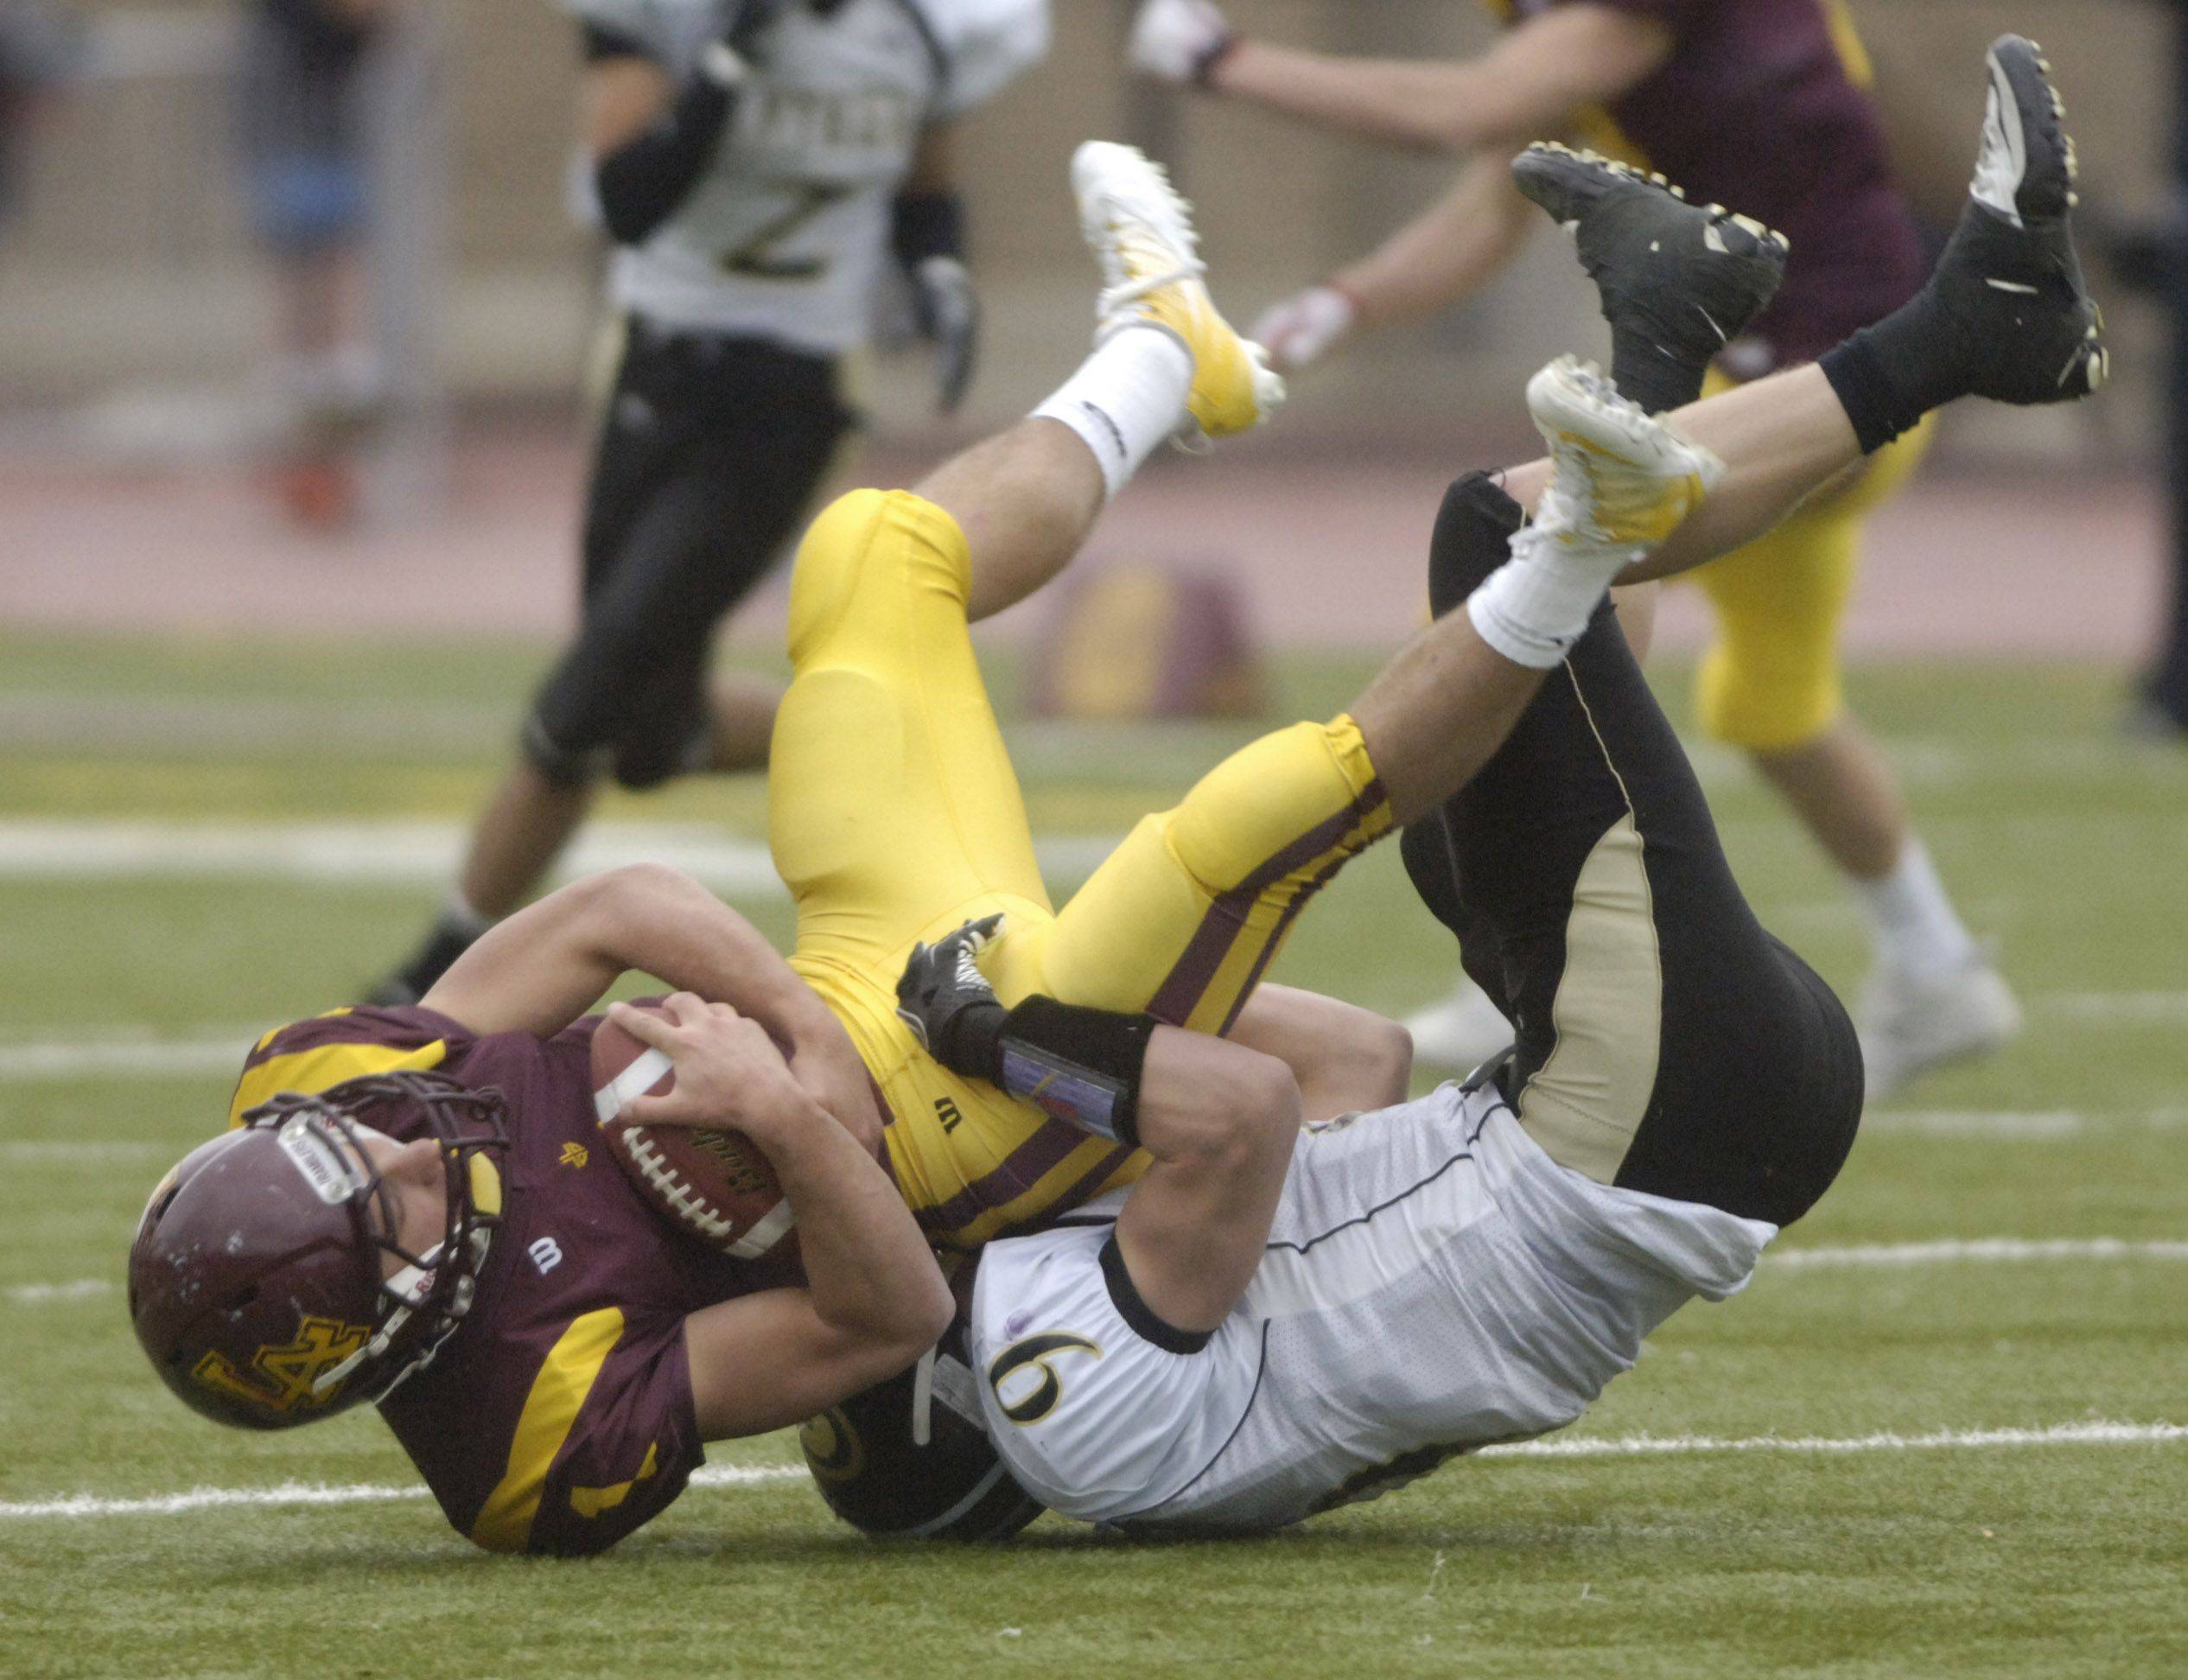 William Pavilos of Loyola Academy gets upended on a tackle by Hunter Week of Glenbard North.